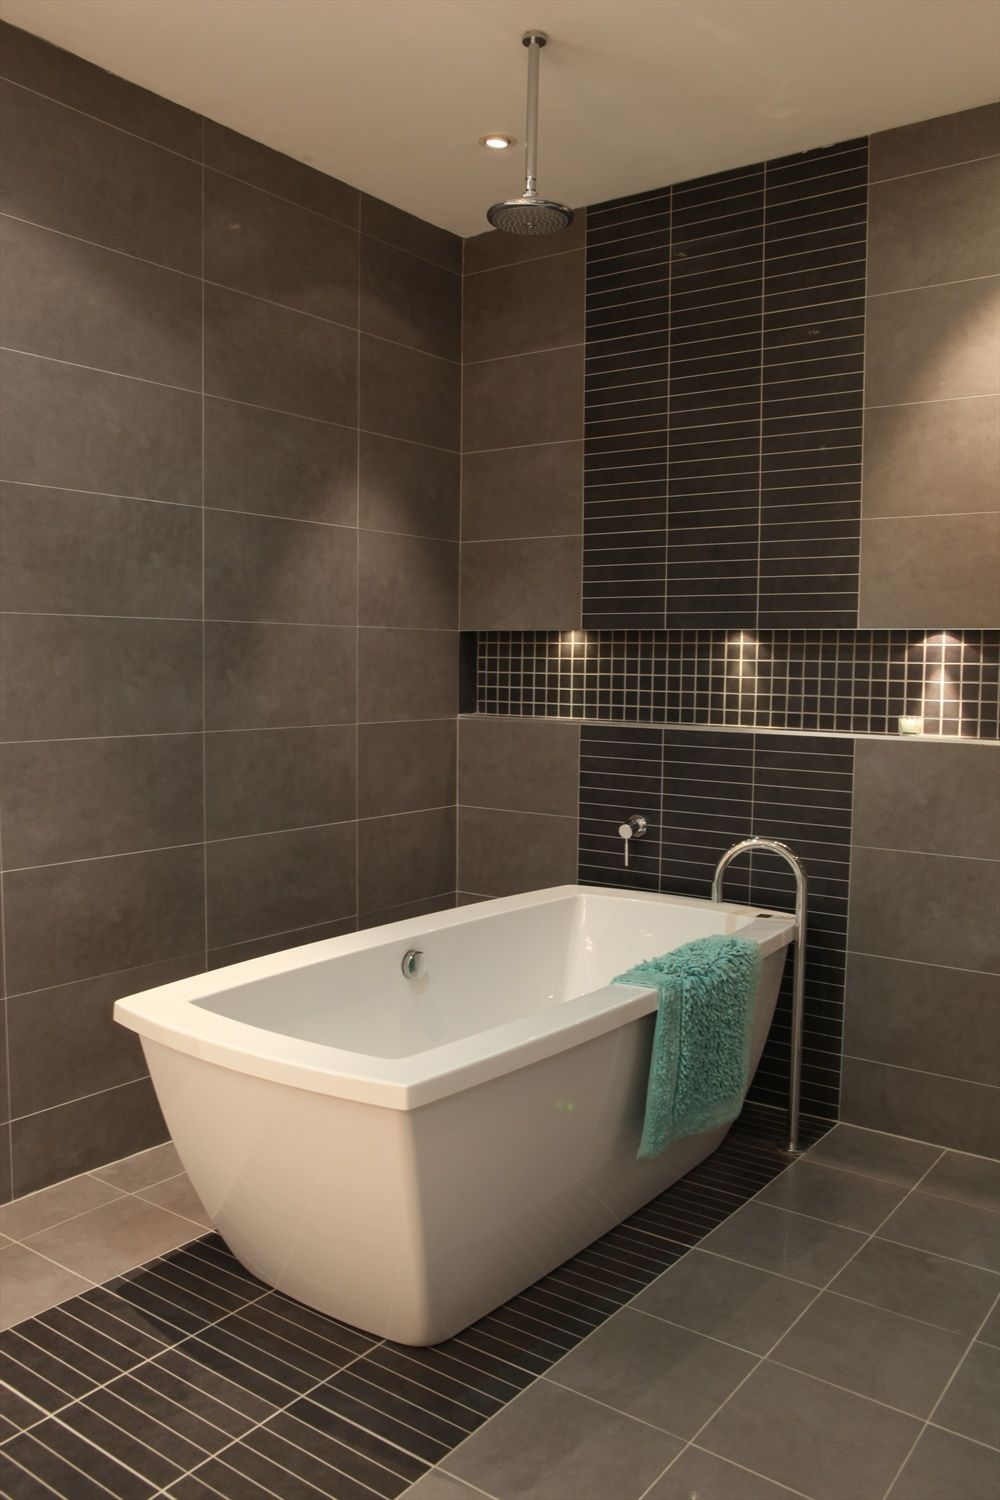 What Do You Think Of This Bathrooms Tile Idea I Got From Beaumont Tiles Check Out More Ideas